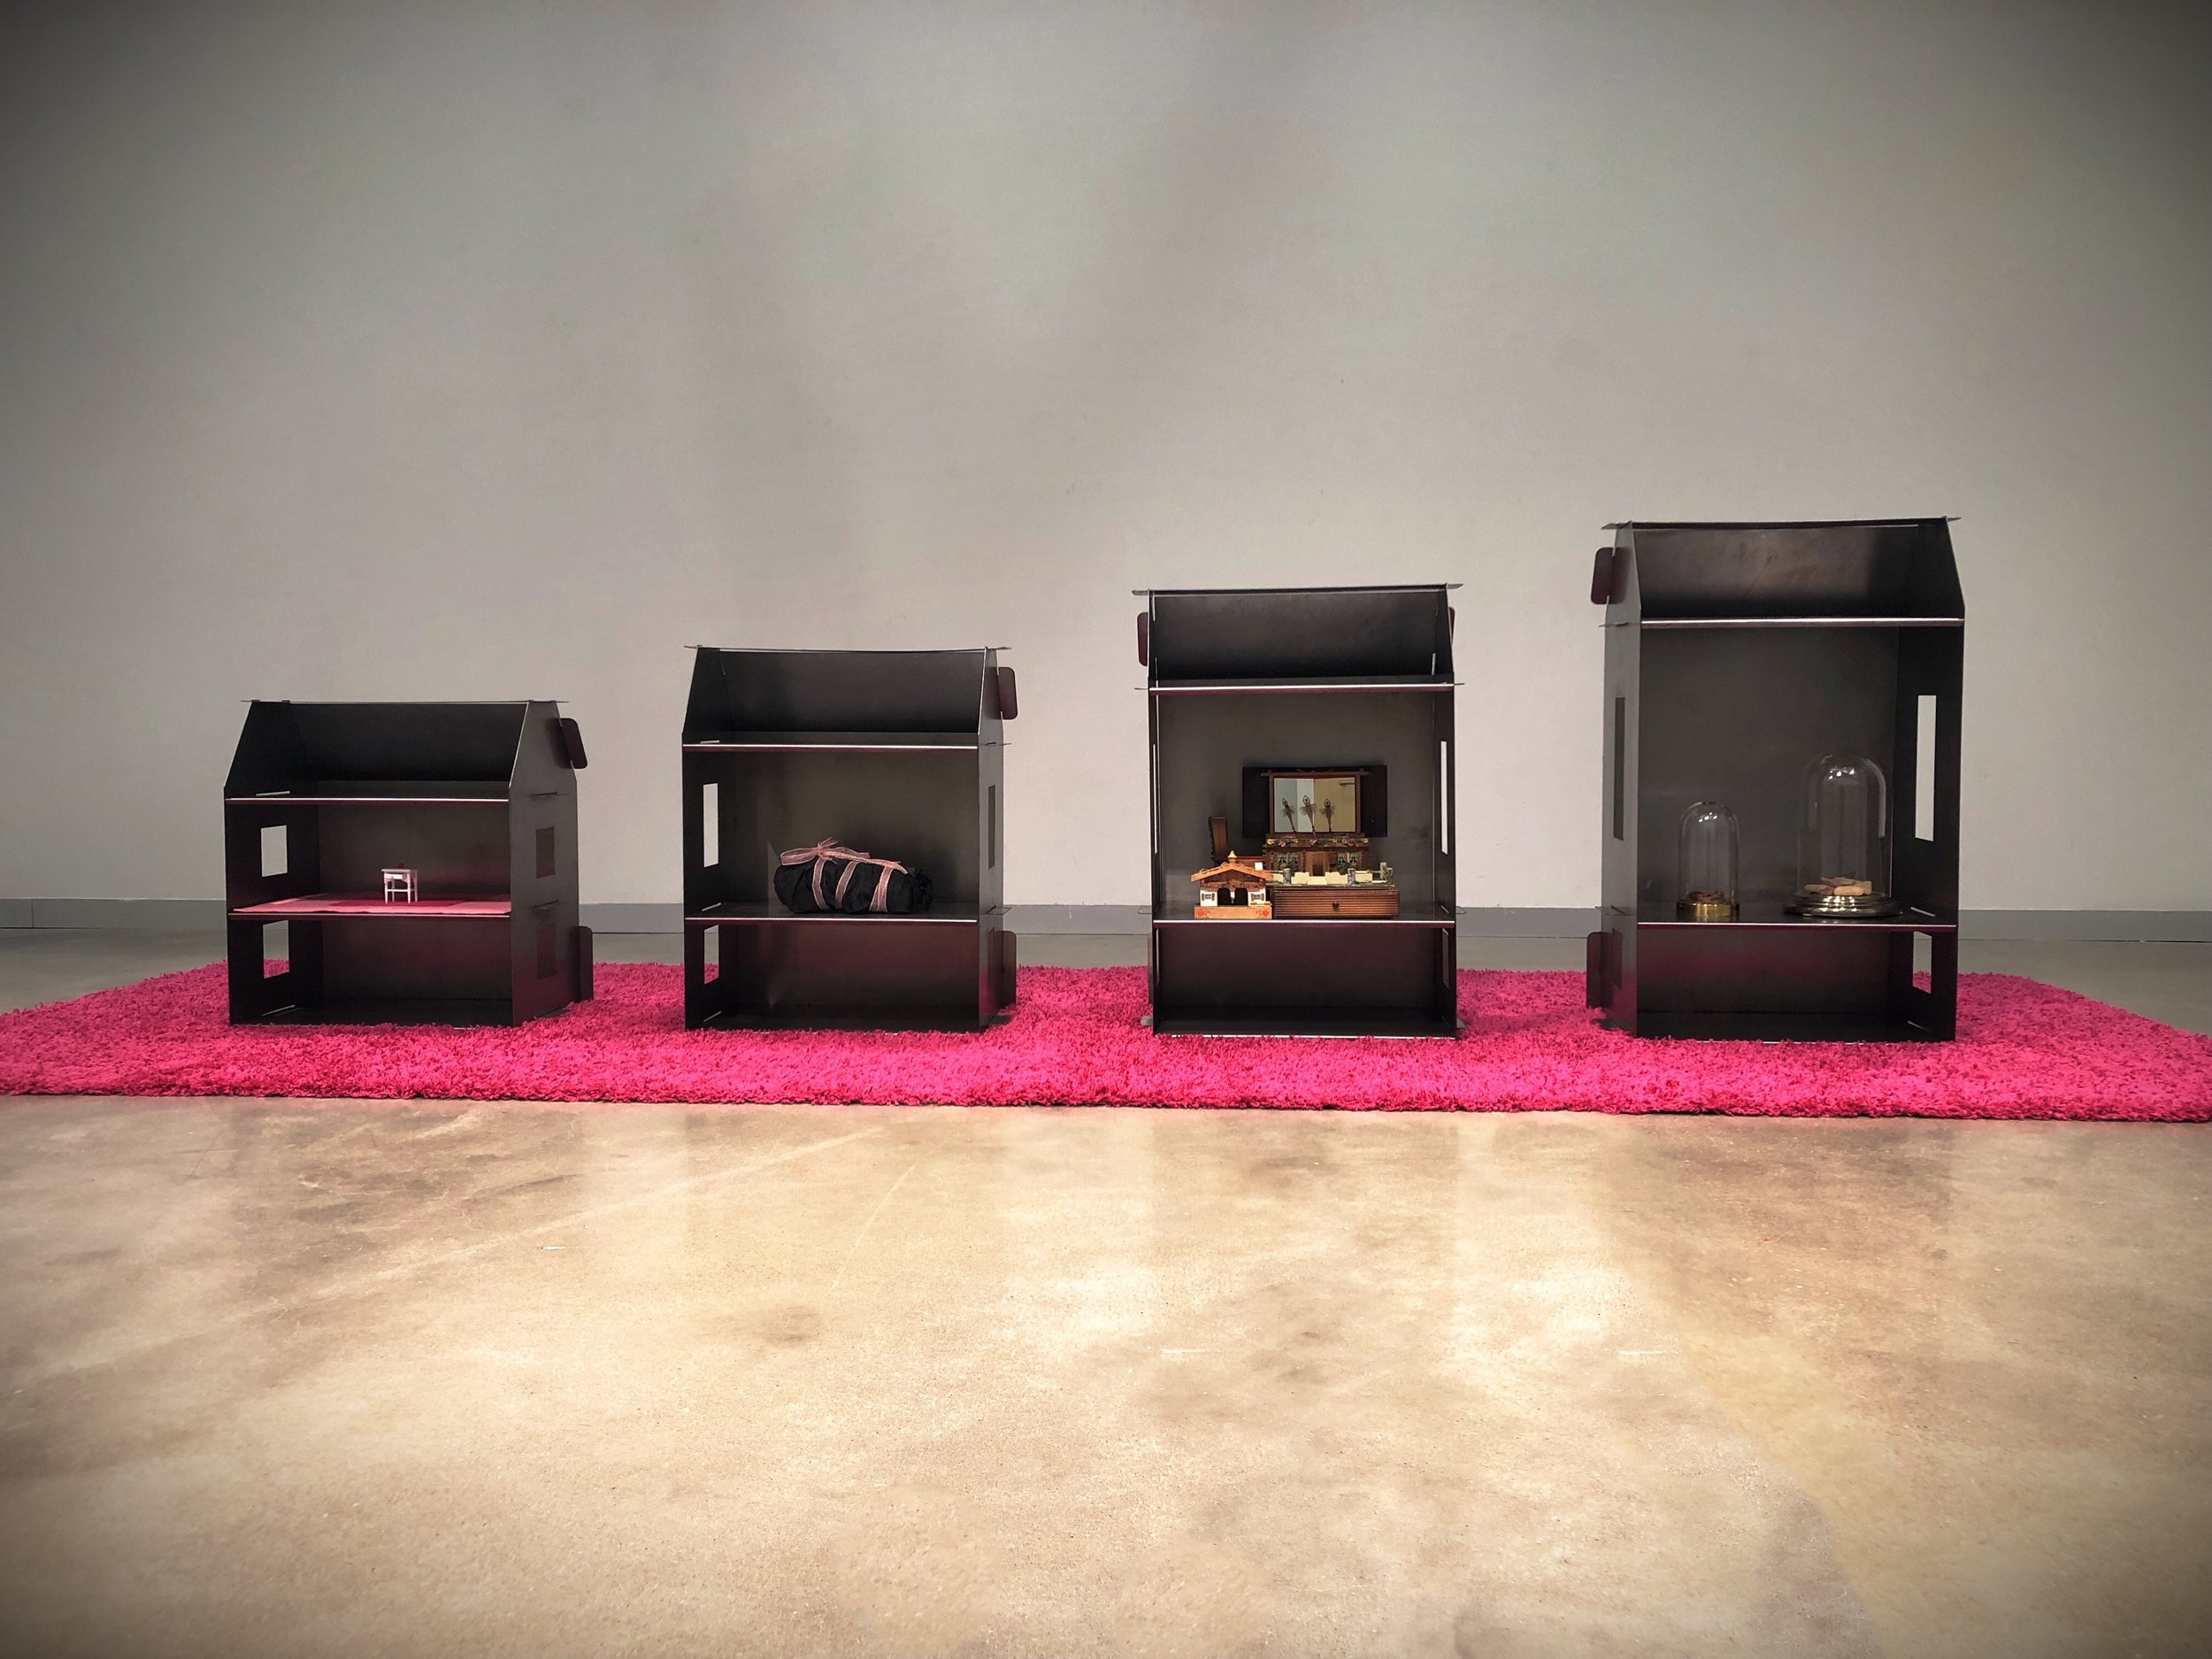 """Ghost House Series   48"""" x 154"""" x 54""""  28 slotted steel pieces (Non-welded), 2 hot pink shag rugs, dollhouse furniture, felt, black dress, pink sparkle ribbon, house shaped music box, minature wood house, 2 lbs dried cloves, 2 cloches, hair from my mother, 9 rocks from rural Nebraska, light scent of goldenrod  (2019)"""